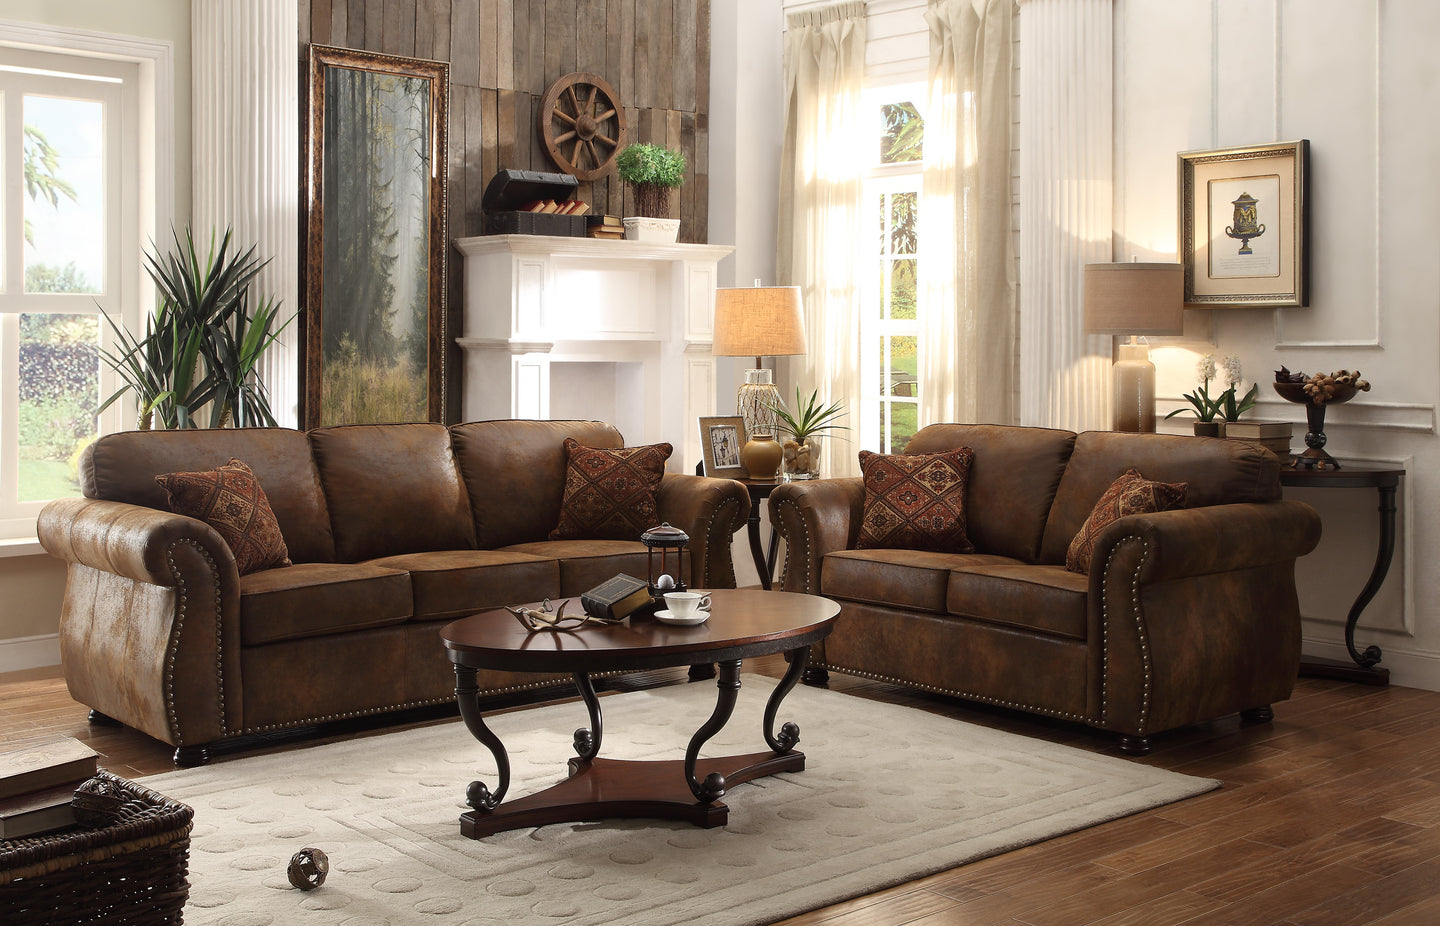 Homelegance Corvallis Brown Microfiber Finish 2 Piece Sofa Set